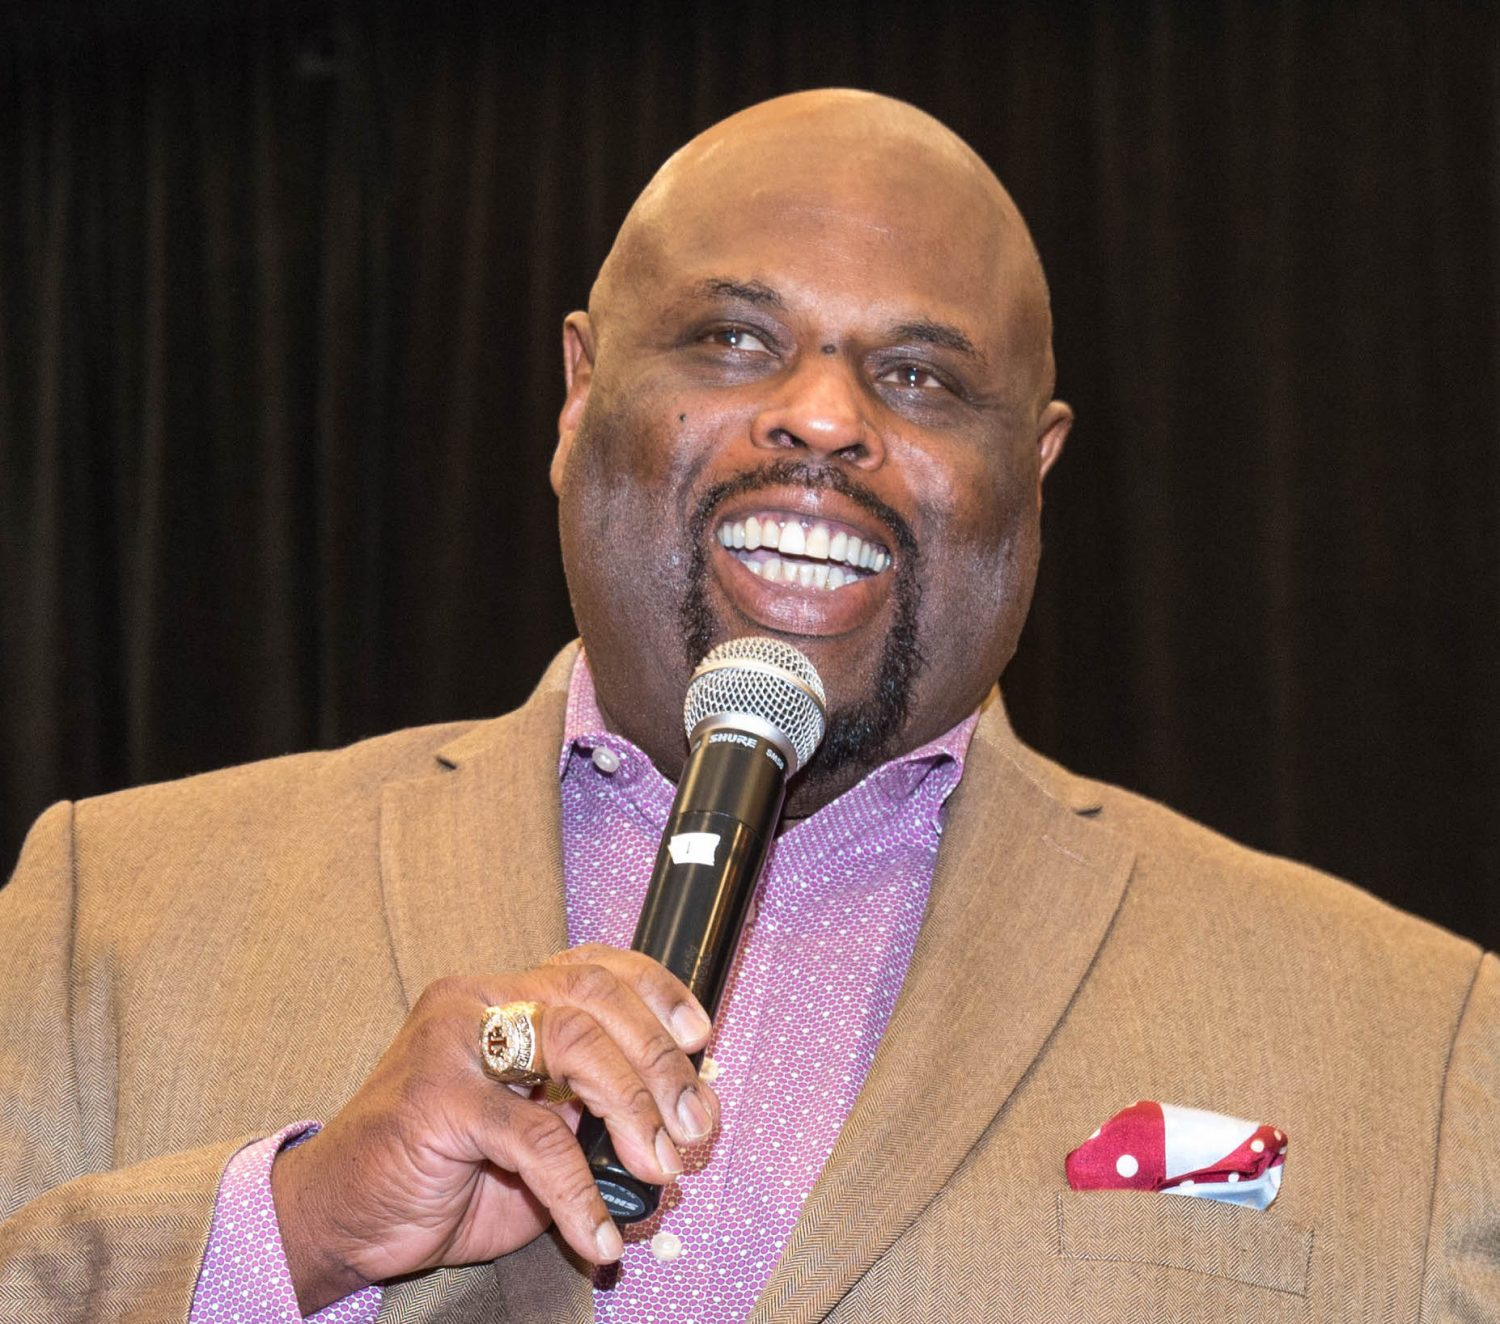 black man with microphone